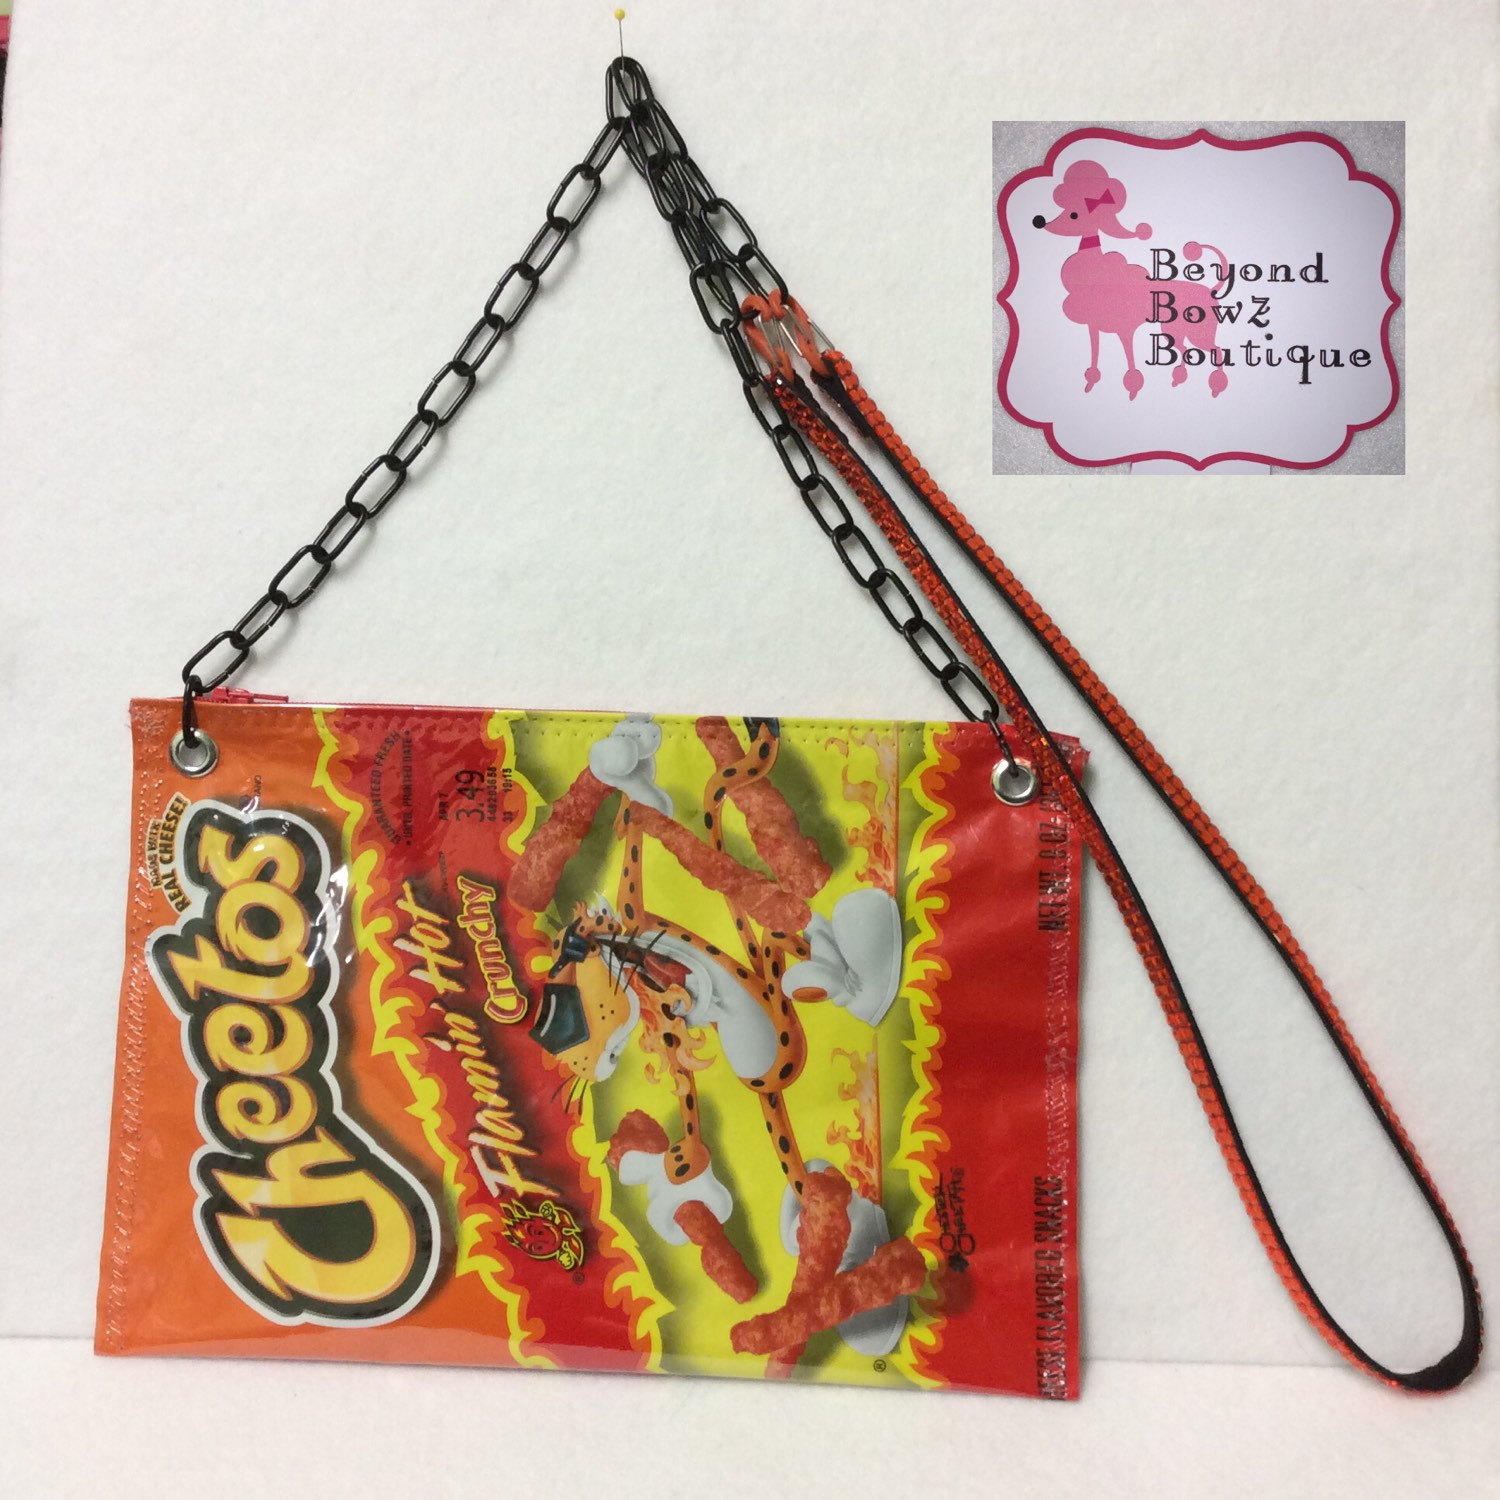 Cheetos clipart bag chip This Recycled purse item? cheetos